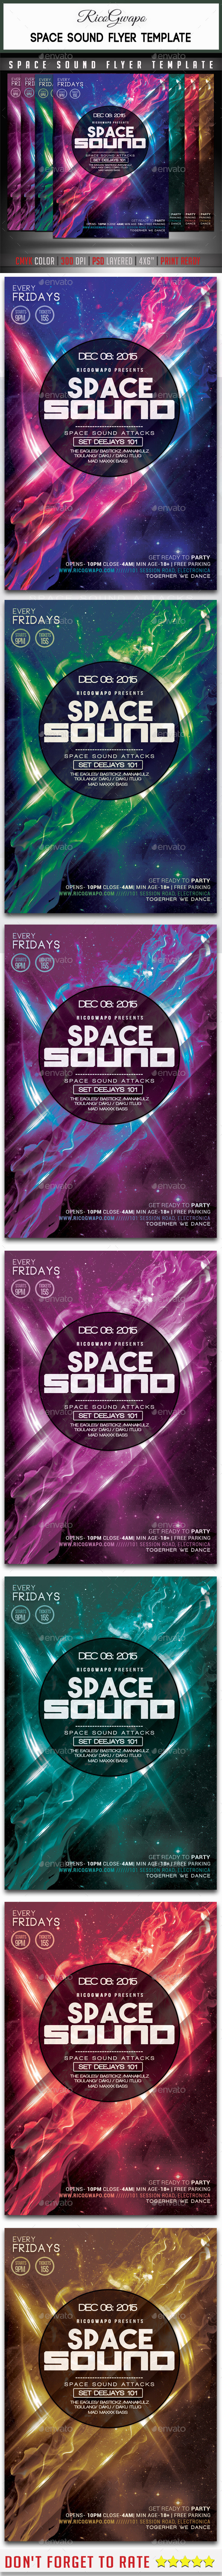 Space Sound Flyer Template - Flyers Print Templates